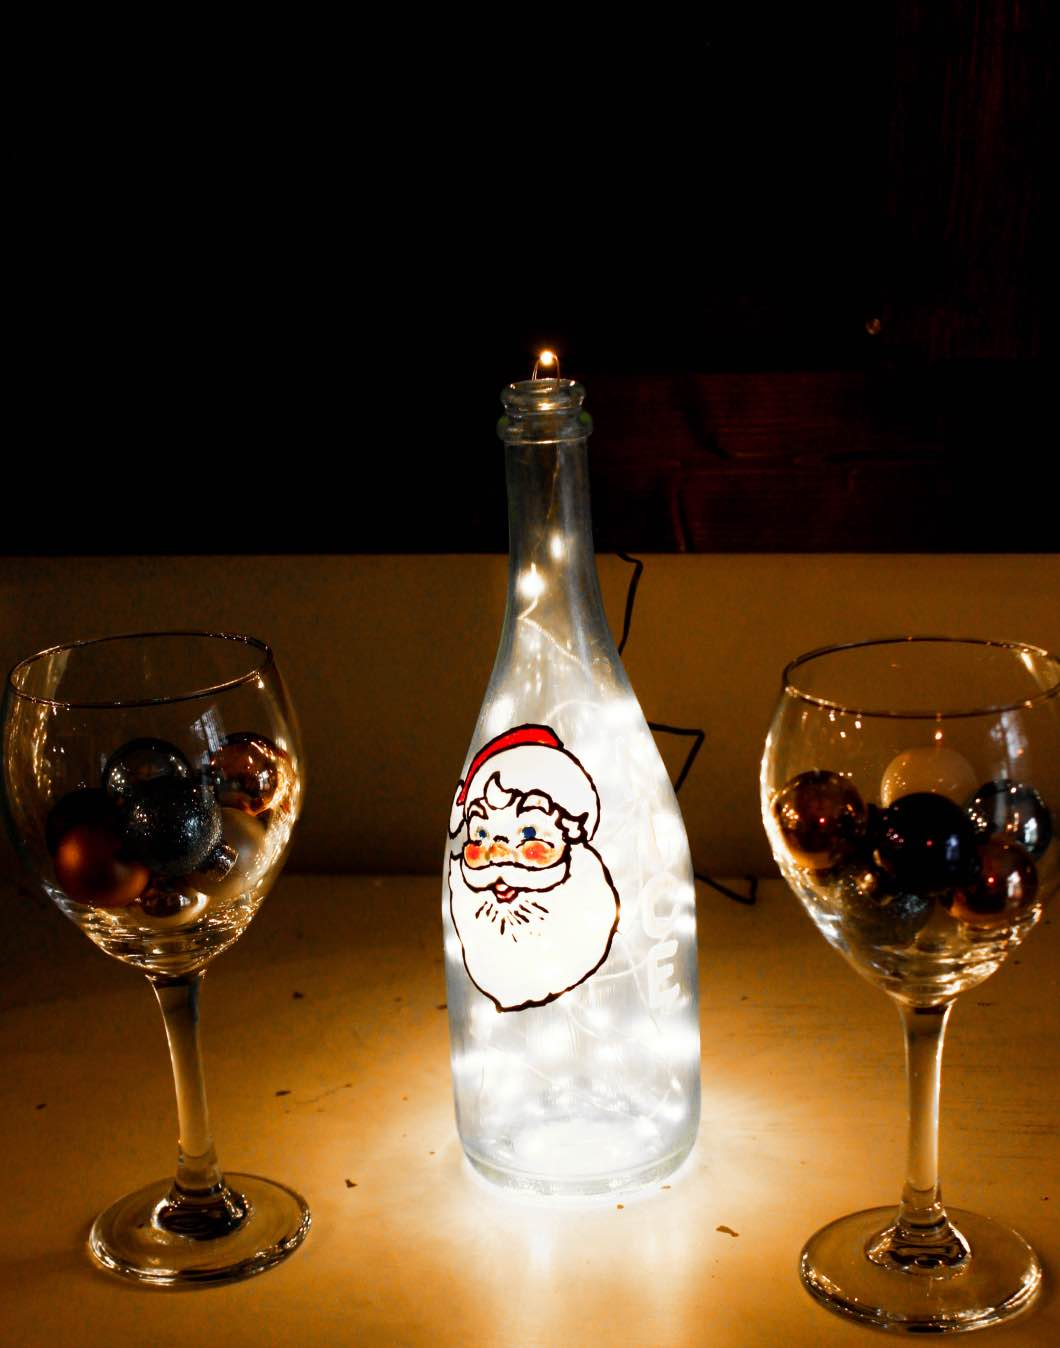 Santa Wine Painted Glass Bottle - Christmas Painted Wine Bottles by Atlanta style blogger Happily Hughes